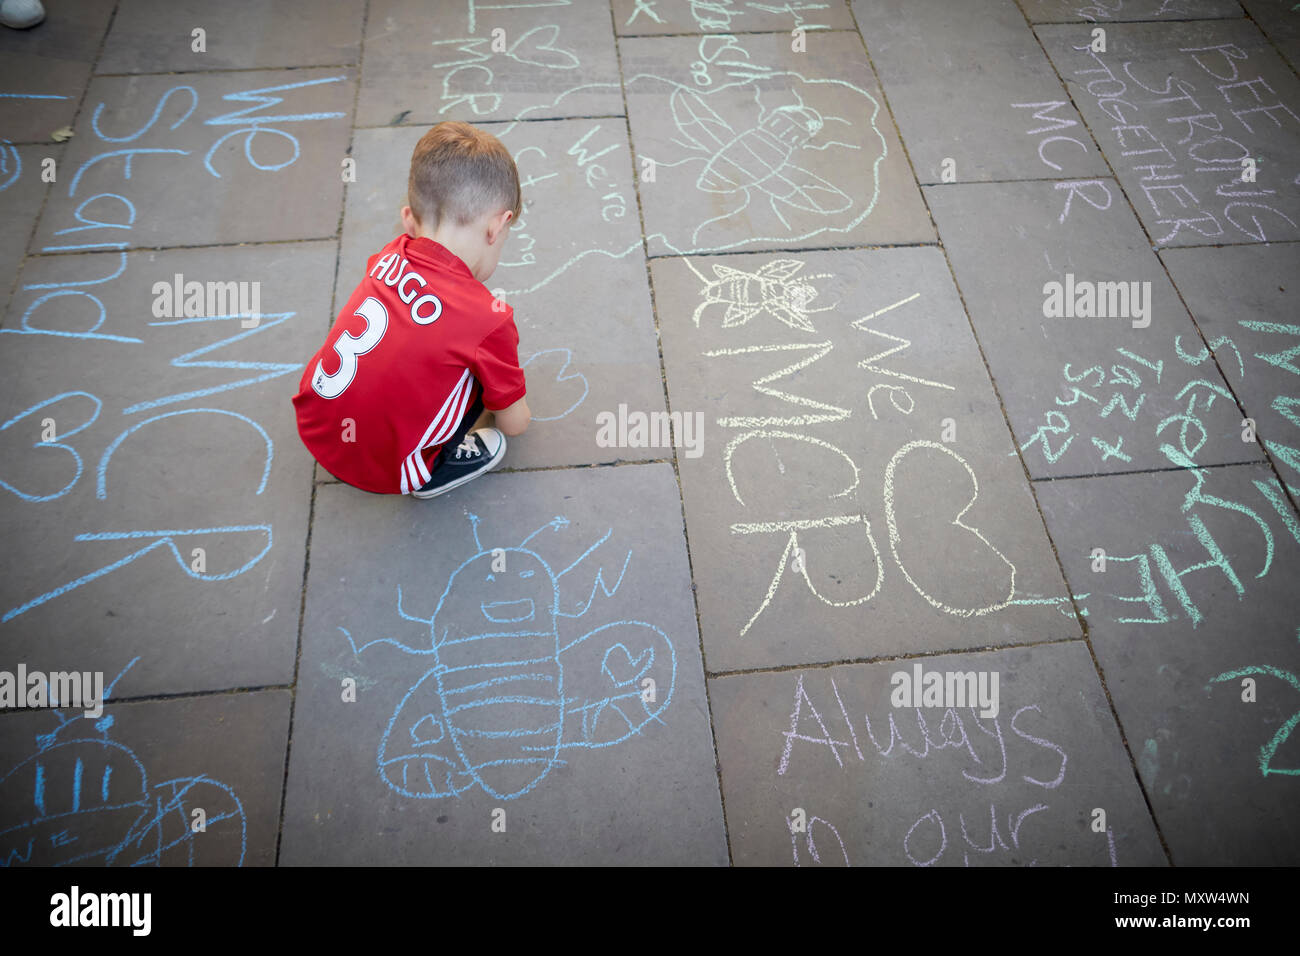 Manchester Arena terror attack 1 year anniversary A little boy drawing on the floor in St Ann's Square, Manchester - Stock Image